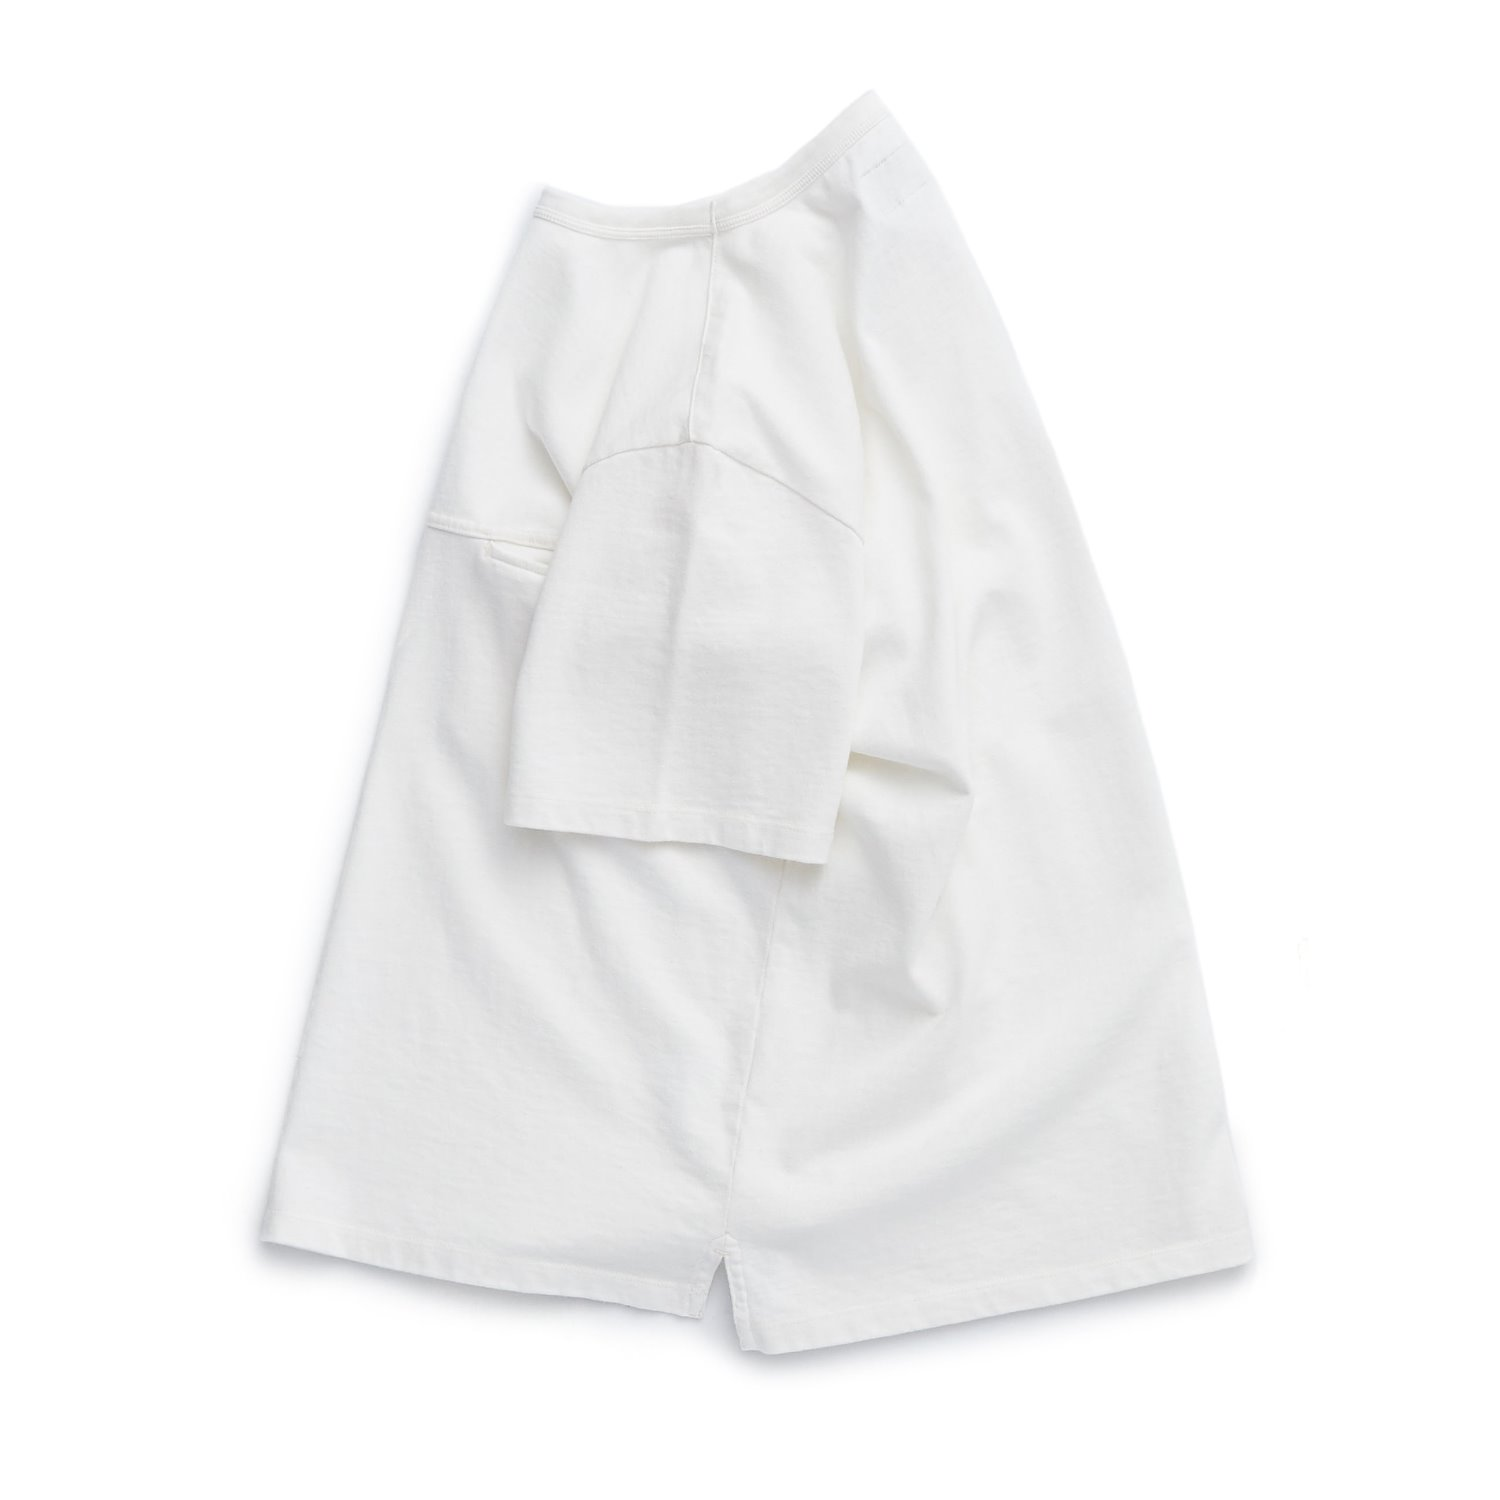 EASTLOGUE One Pocket T-Shirts (White)